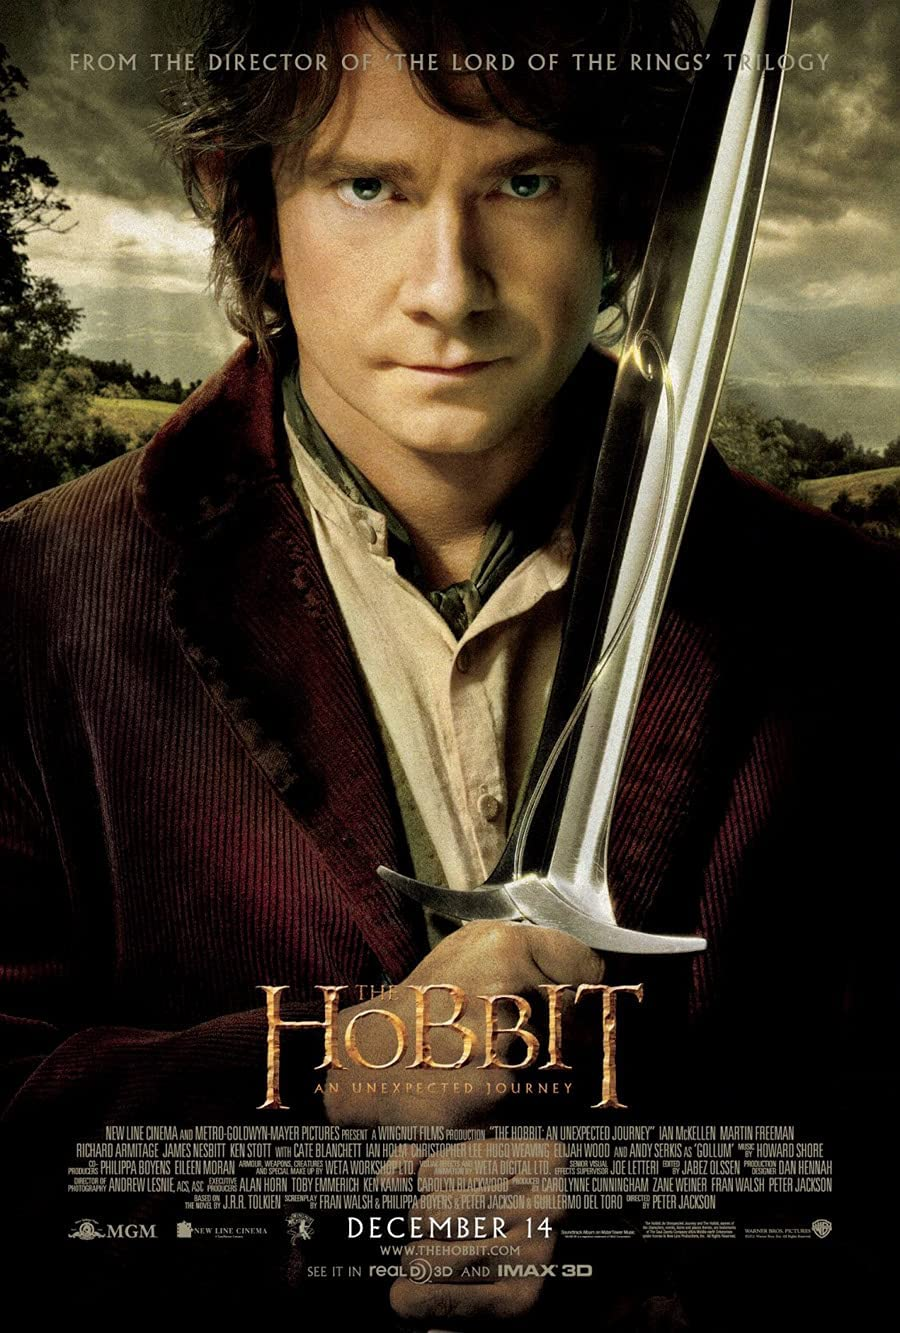 THE HOBBIT Clearance SALE! Limited time! Brand Cheap Sale Venue AN UNEXPECTED JOURNEY MOVIE Sided POSTER F ORIGINAL 2